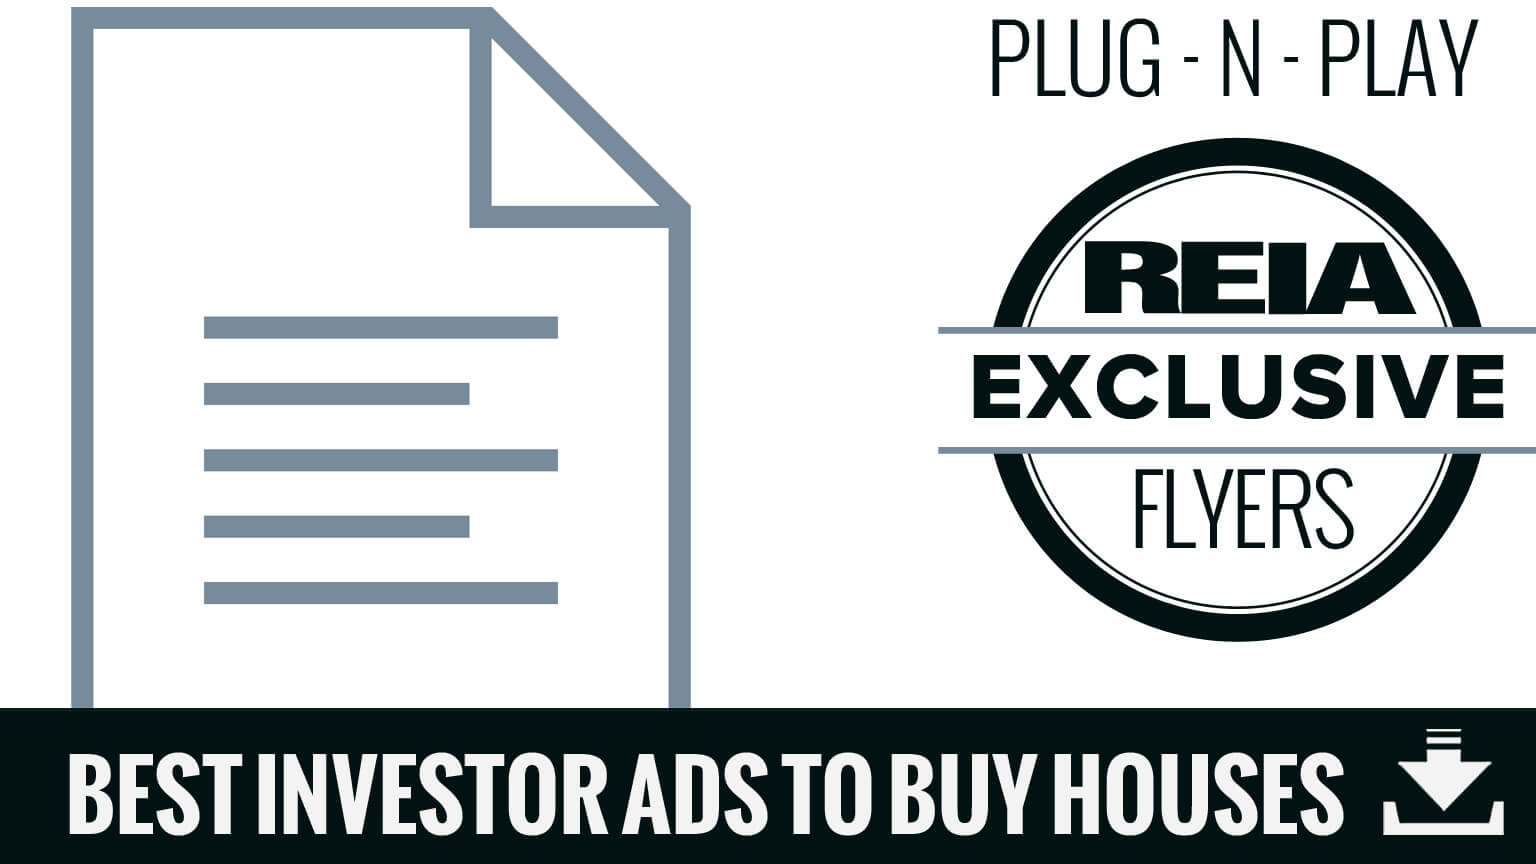 Best Investor Ads Proven for Attracting Motivated Sellers to Buy Houses to Flip